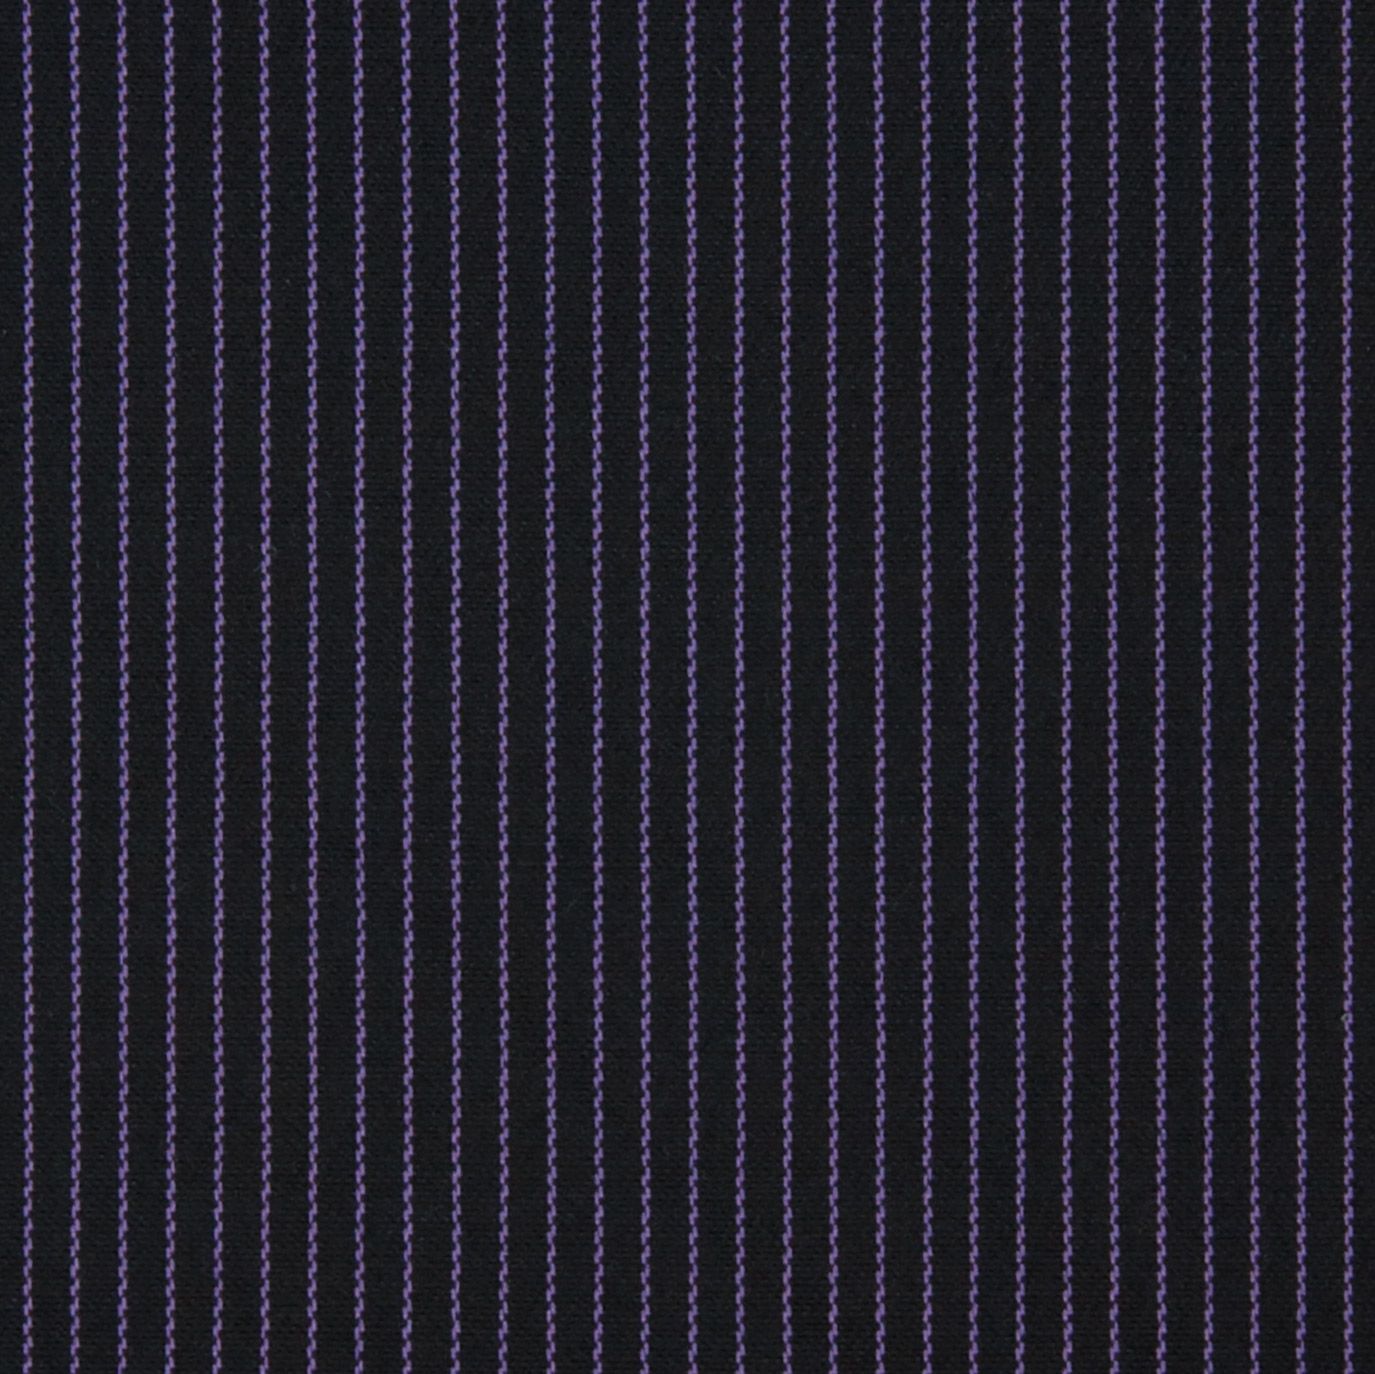 Buy tailor made shirts online - Arturo Collection - Black with Fine Purple Stripe